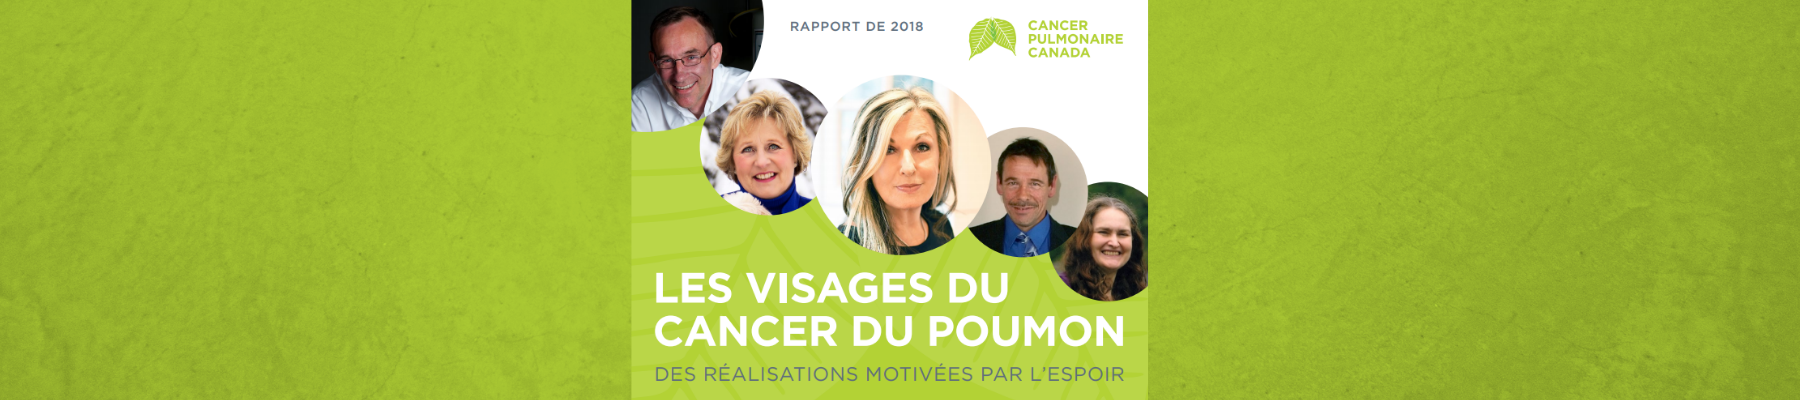 Rapport Sur Les Differents Visages Du Cancer Du Poumon 2016